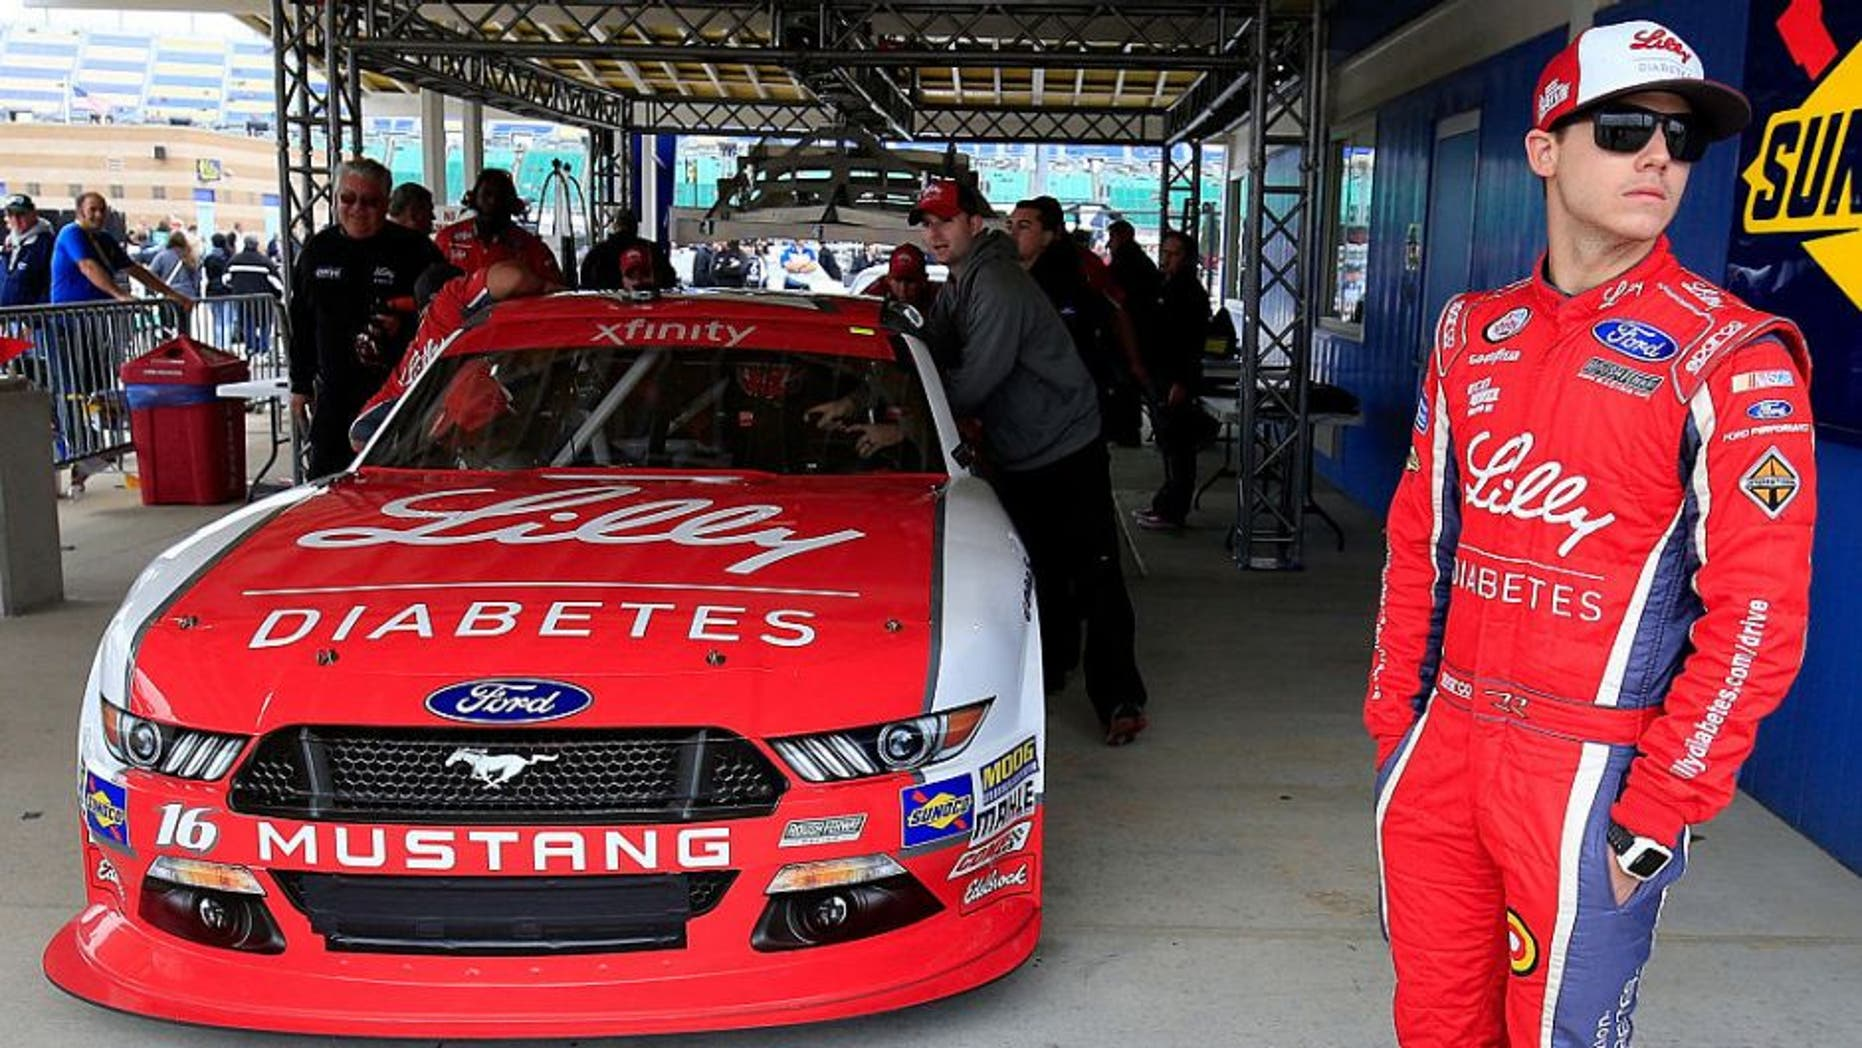 KANSAS CITY, KS - OCTOBER 15: Ryan Reed, driver of the #16 Lilly Diabetes/American Diabetes Association Ford, waits as his car is inspected by NASCAR officials prior to qualifying for the NASCAR XFINITY Series Kansas Lottery 300 at Kansas Speedway on October 15, 2016 in Kansas City, Kansas. (Photo by Chris Trotman/Getty Images)